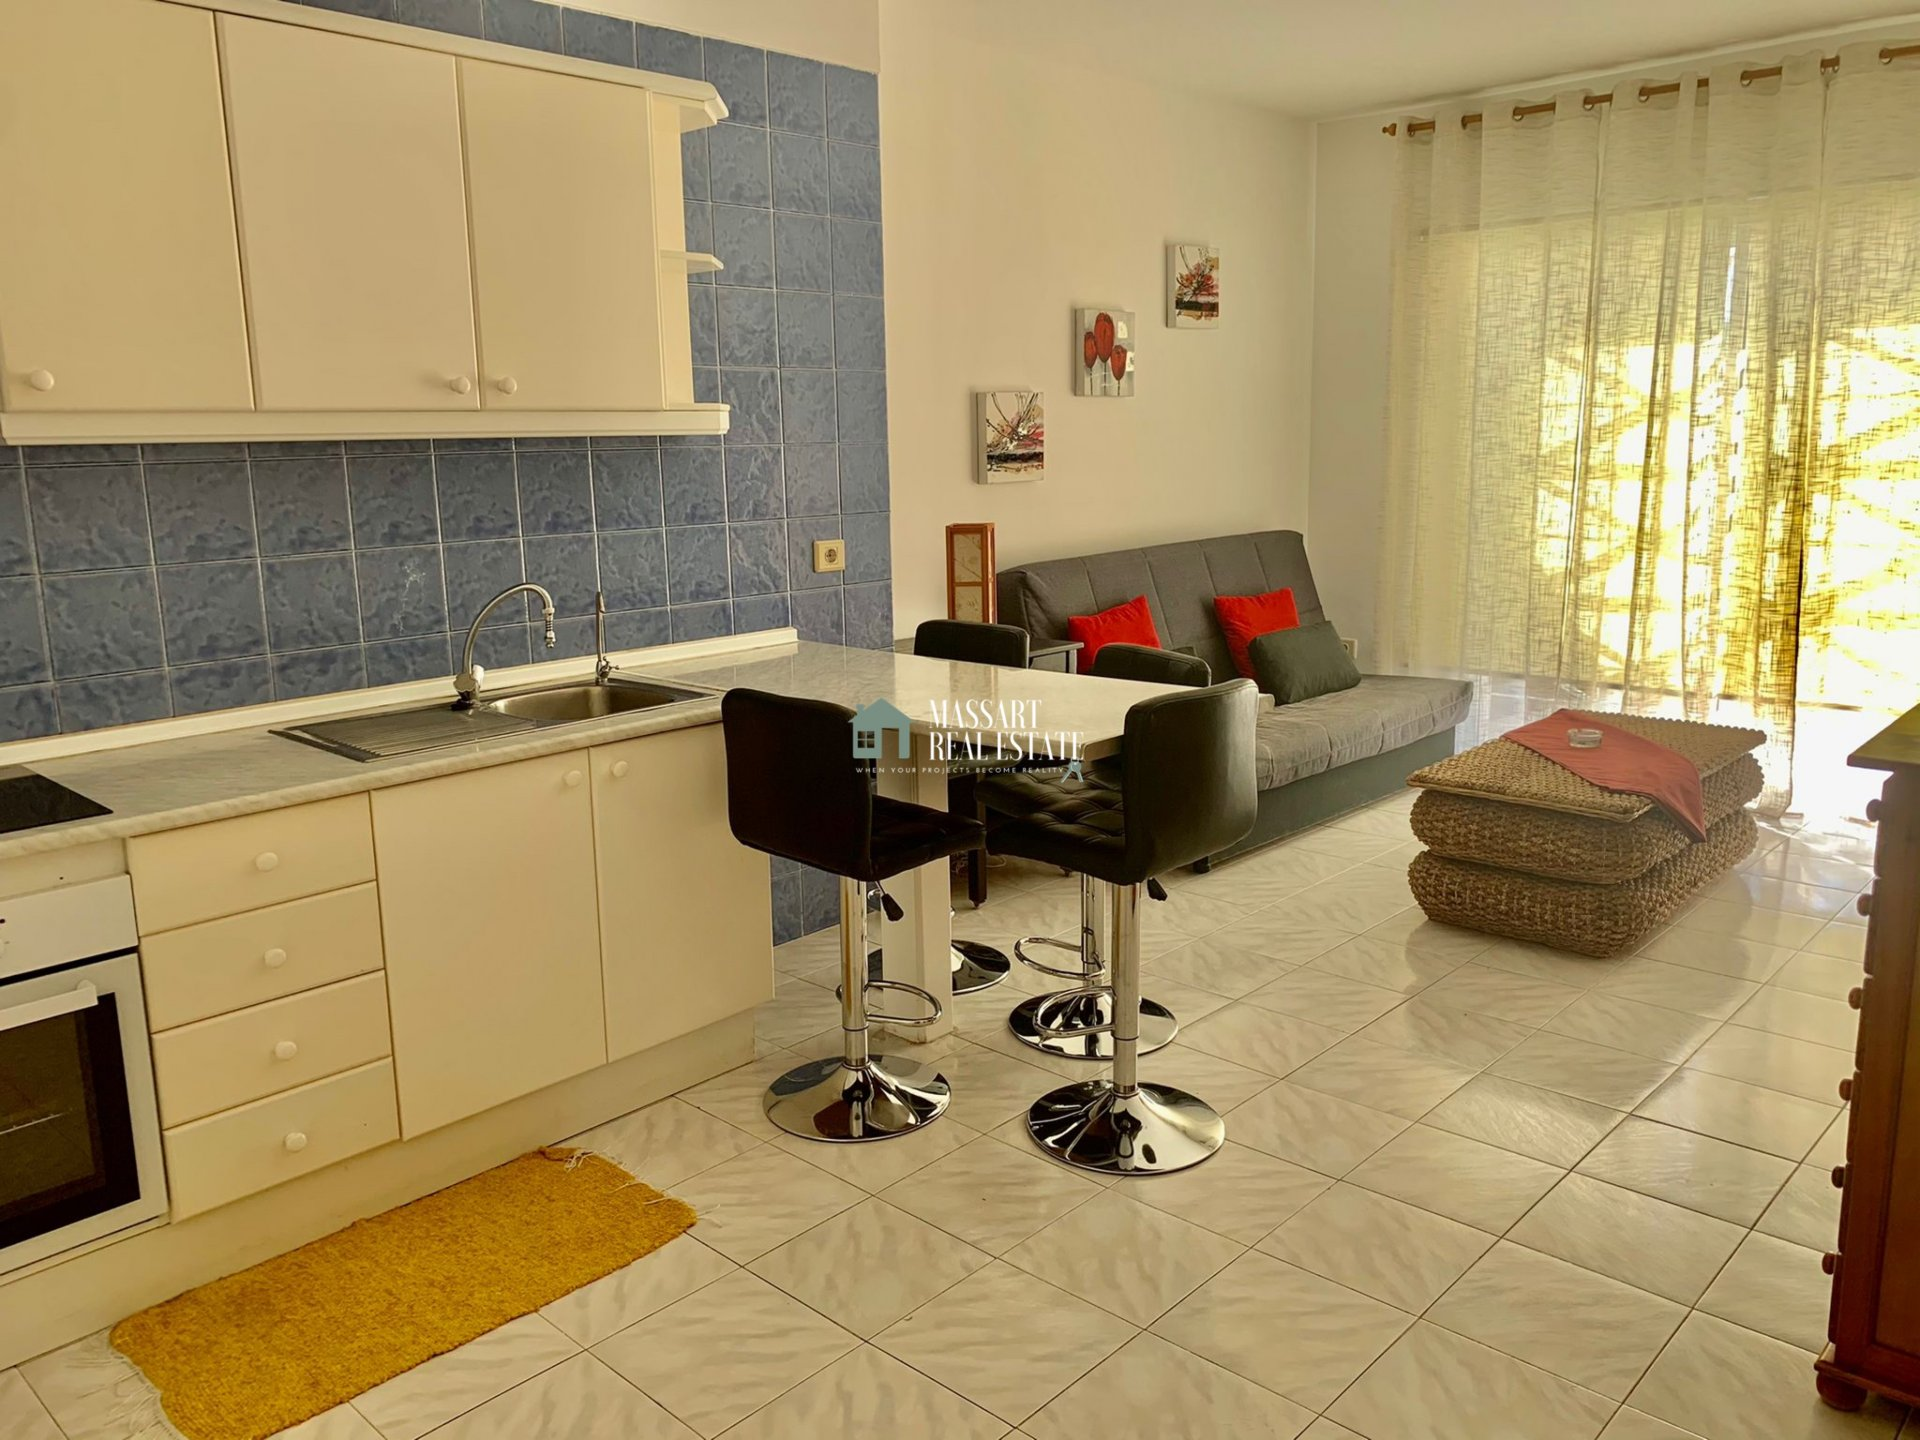 Fully furnished apartment characterized by its good state of conservation and its strategic location, in a quiet and central area of Los Cristianos.